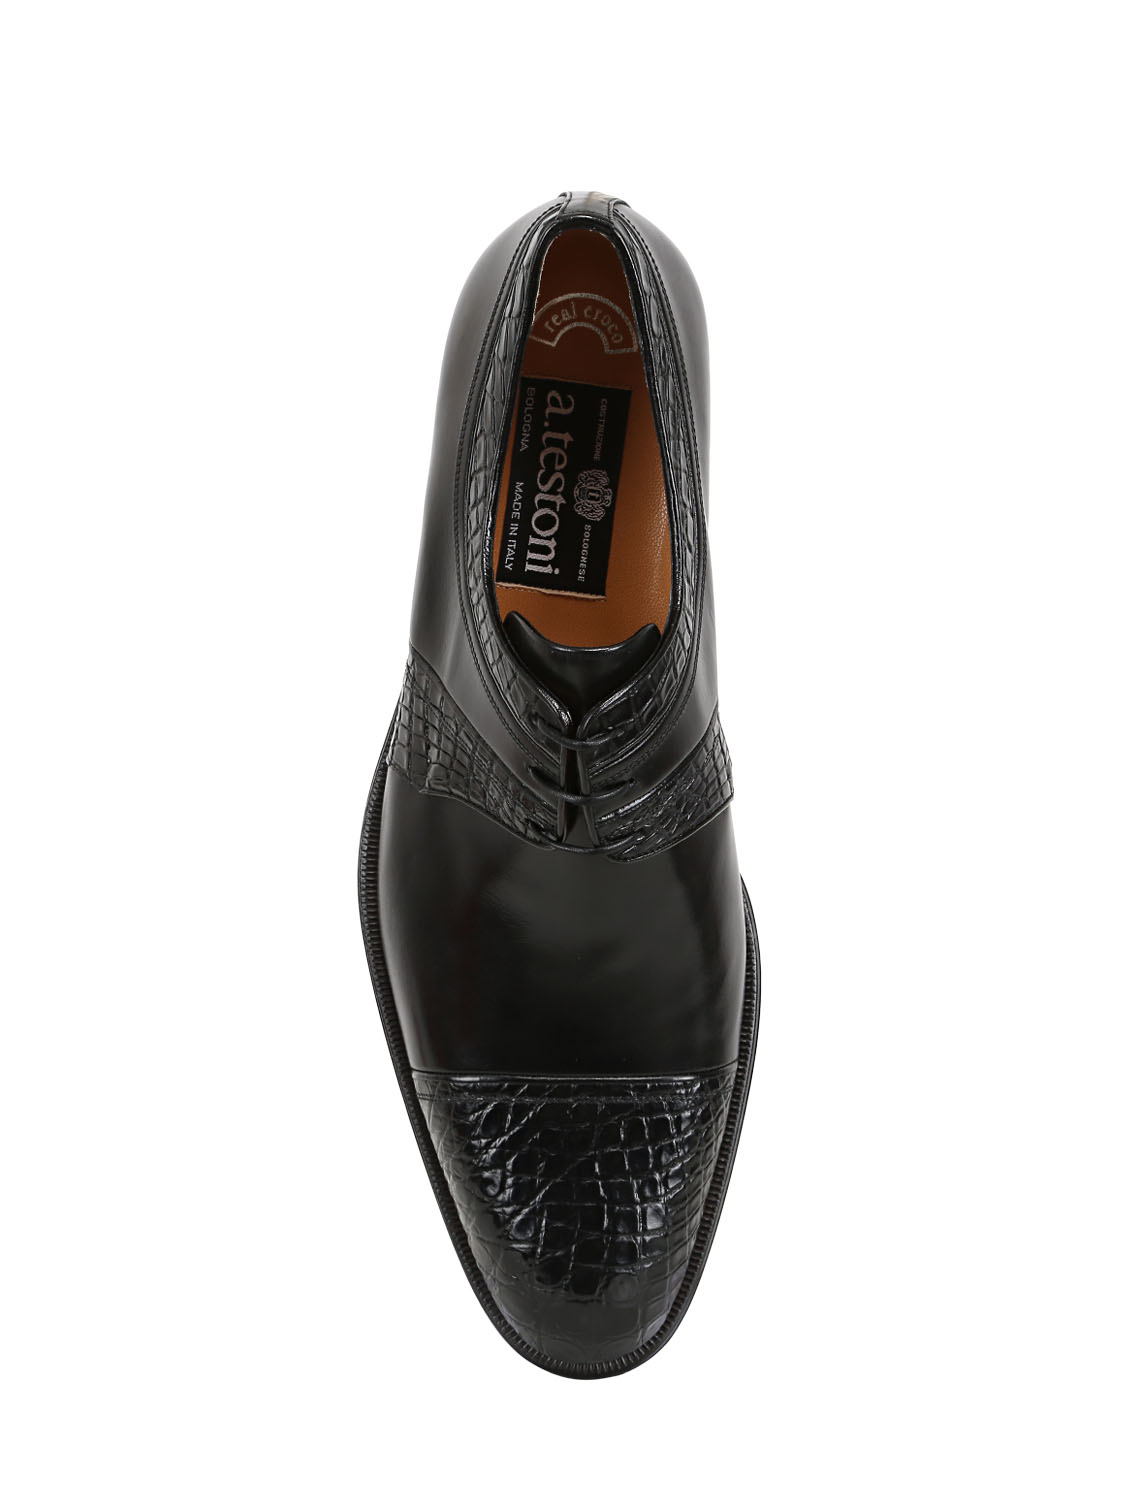 A.Testoni Leather Crocodile Derby Shoes in Black for Men